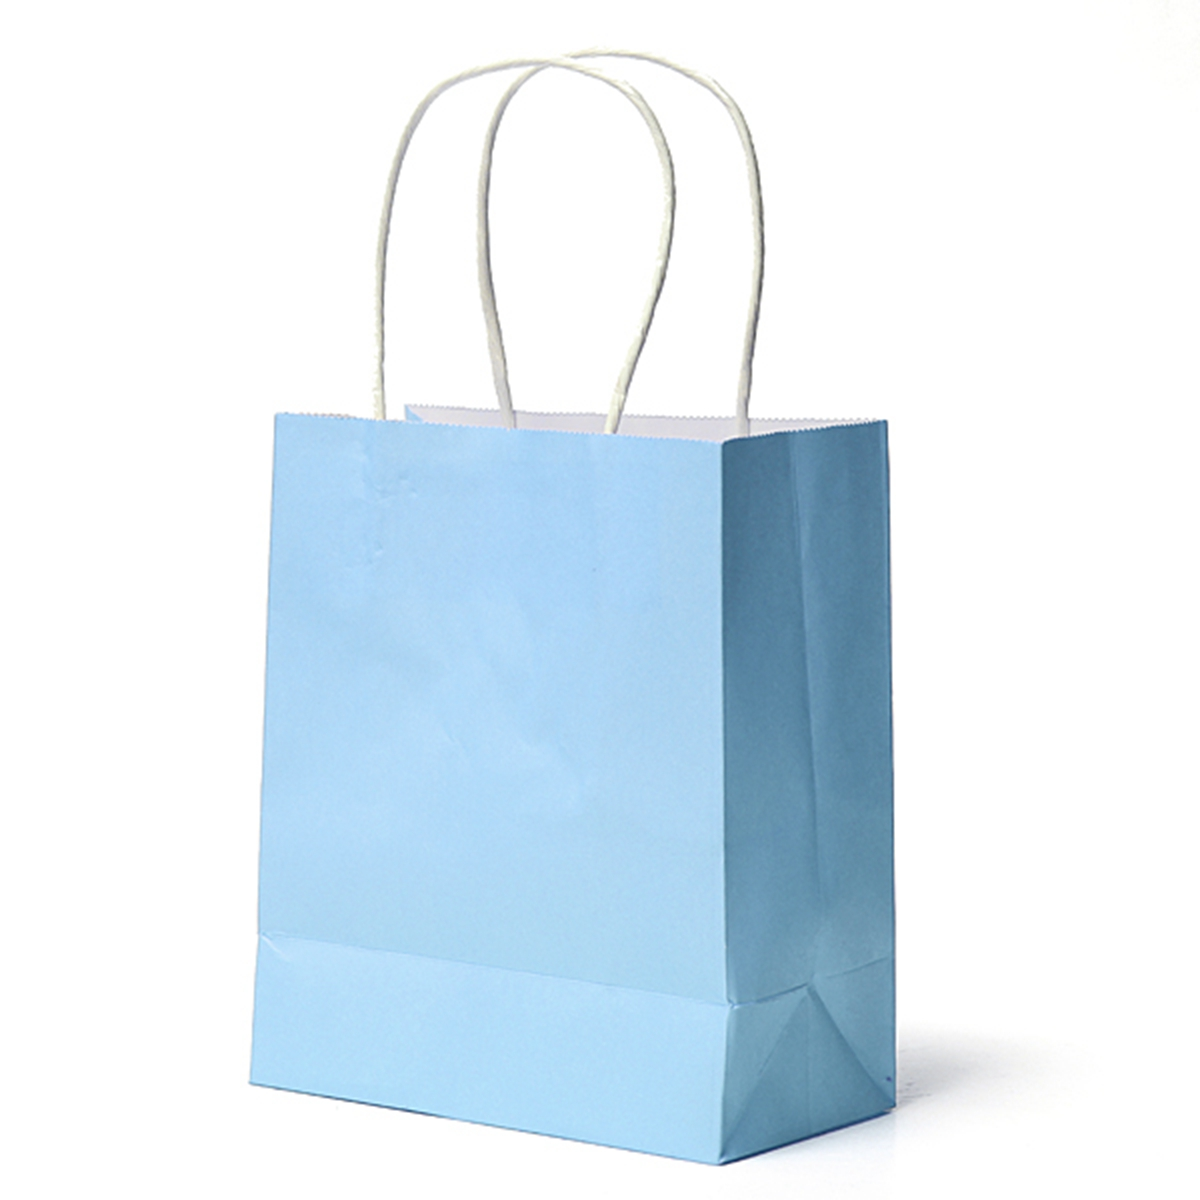 Paper party bags with handles